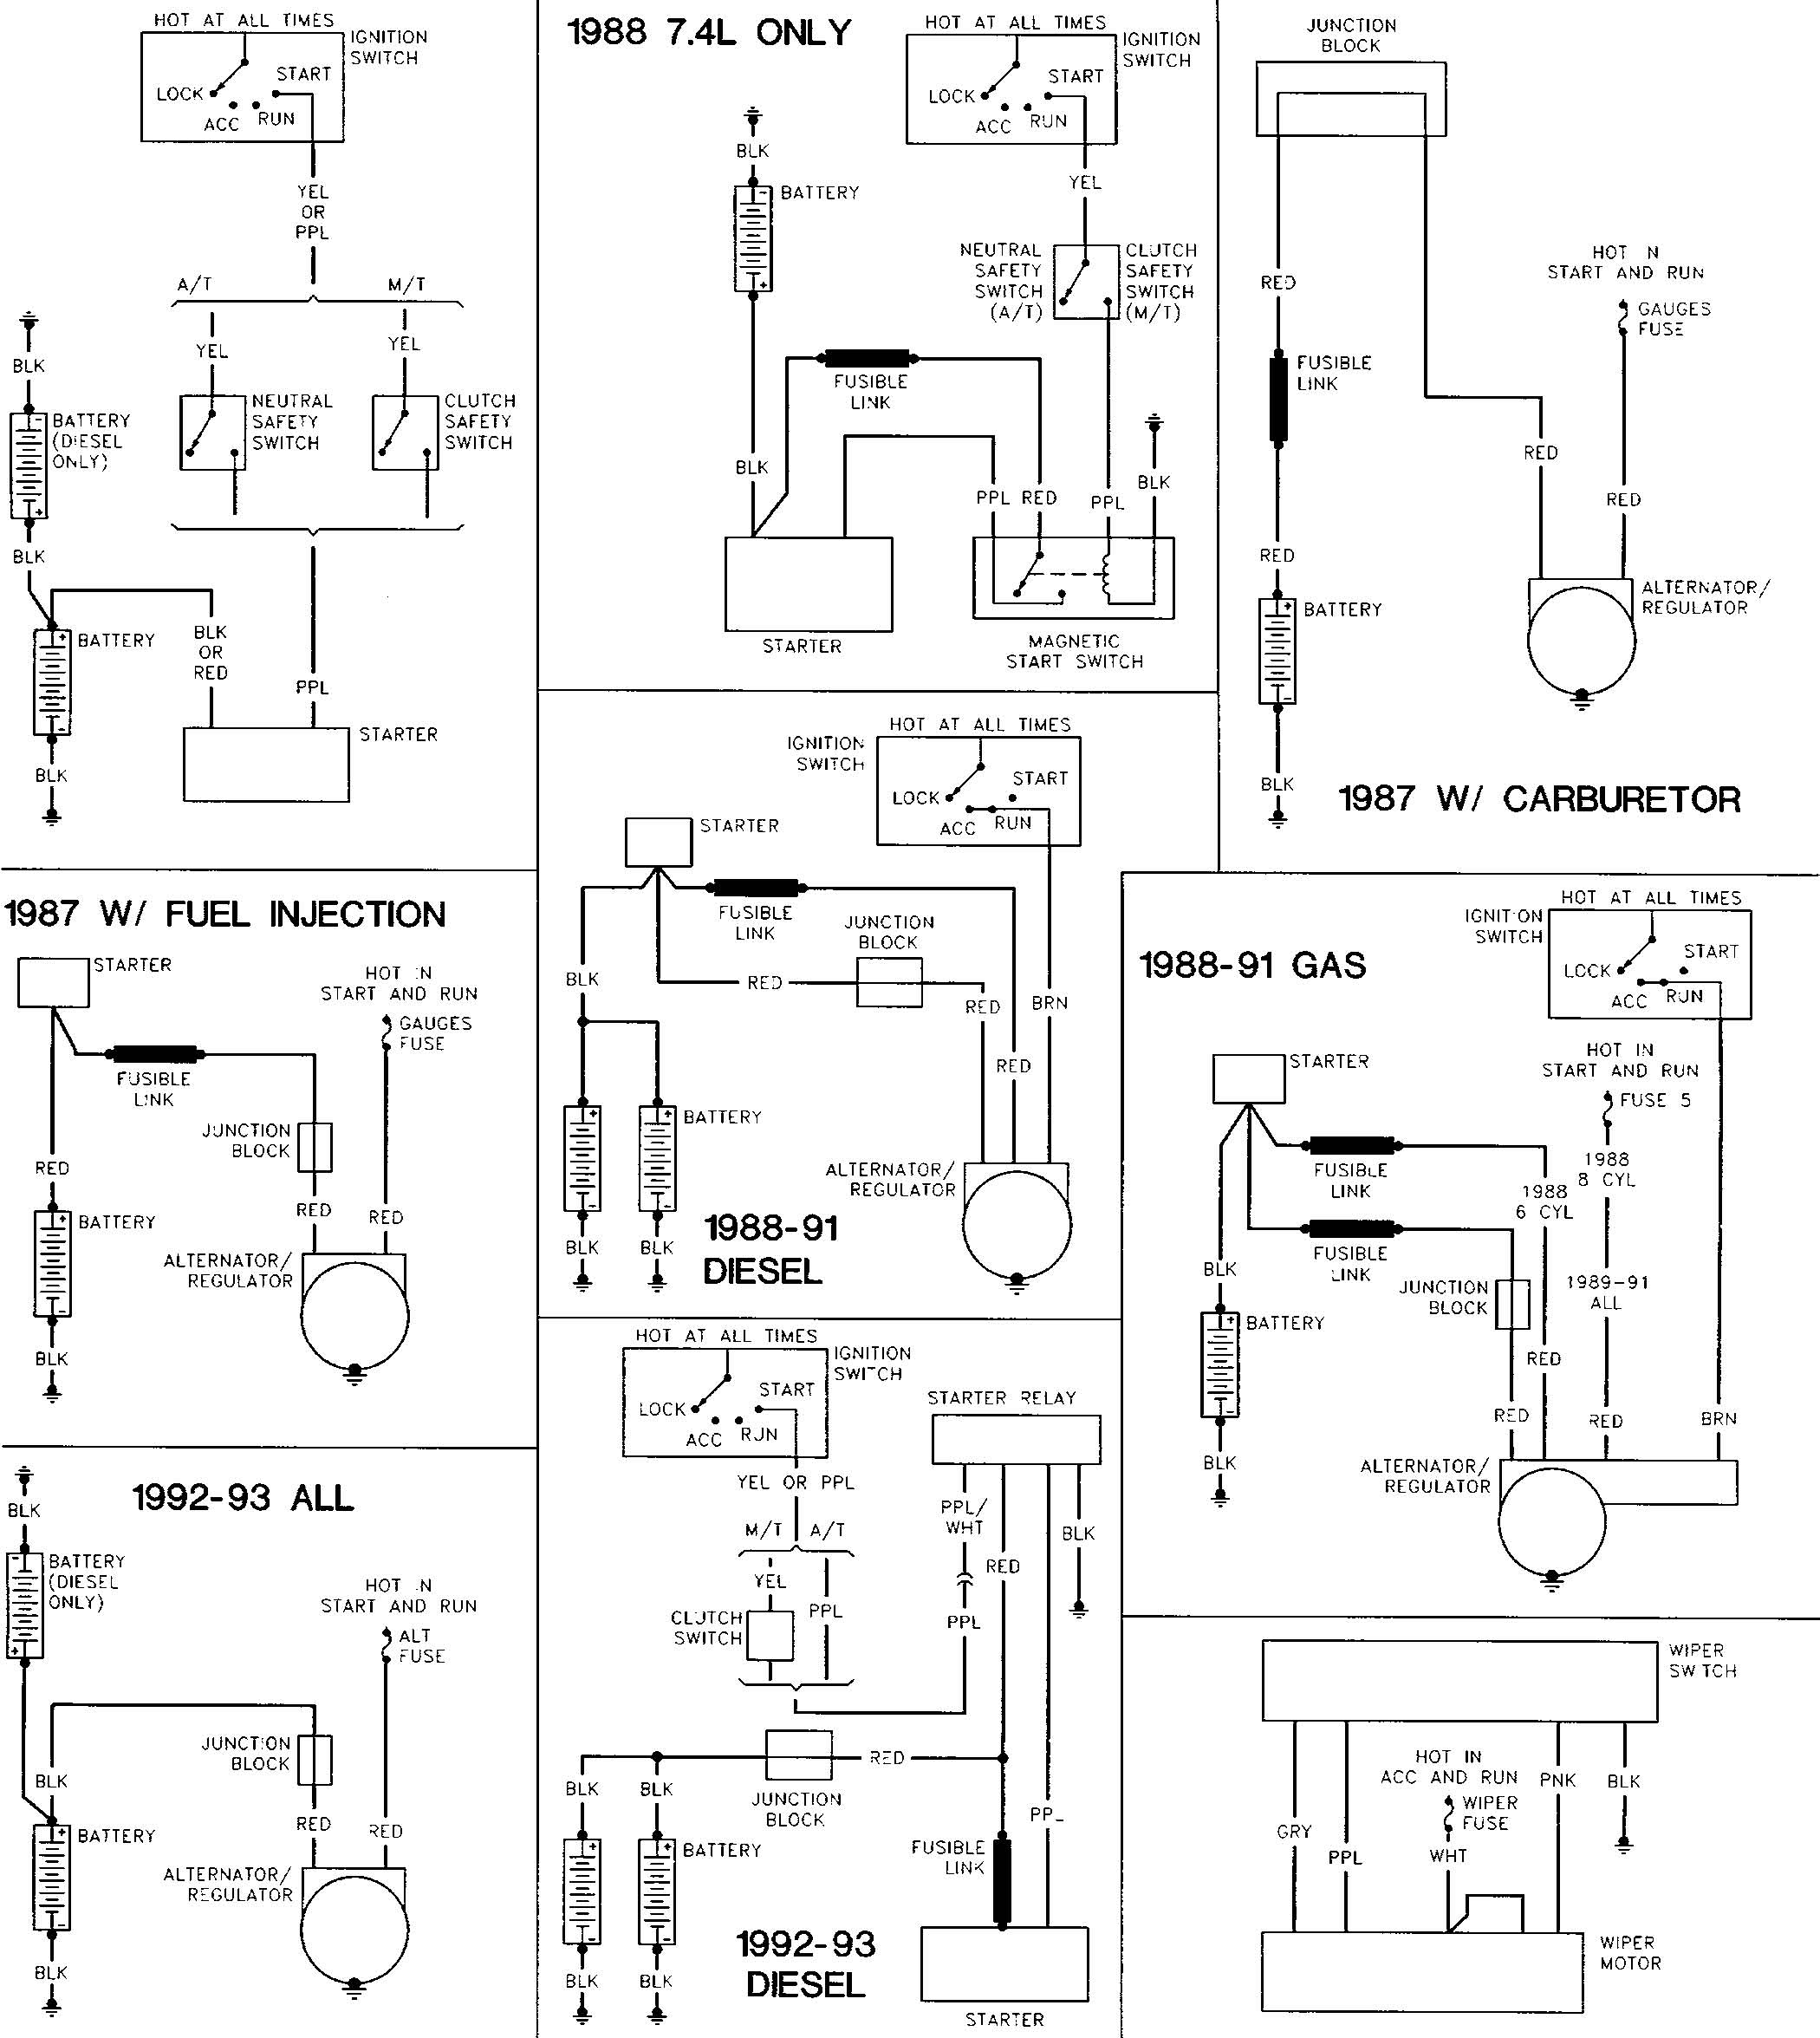 7 4 454 Chevy Motorhome Wiring Diagram Good 1st 89 Harness Todays Rh 10 1813weddingbarn Com 1988 Engine 1997